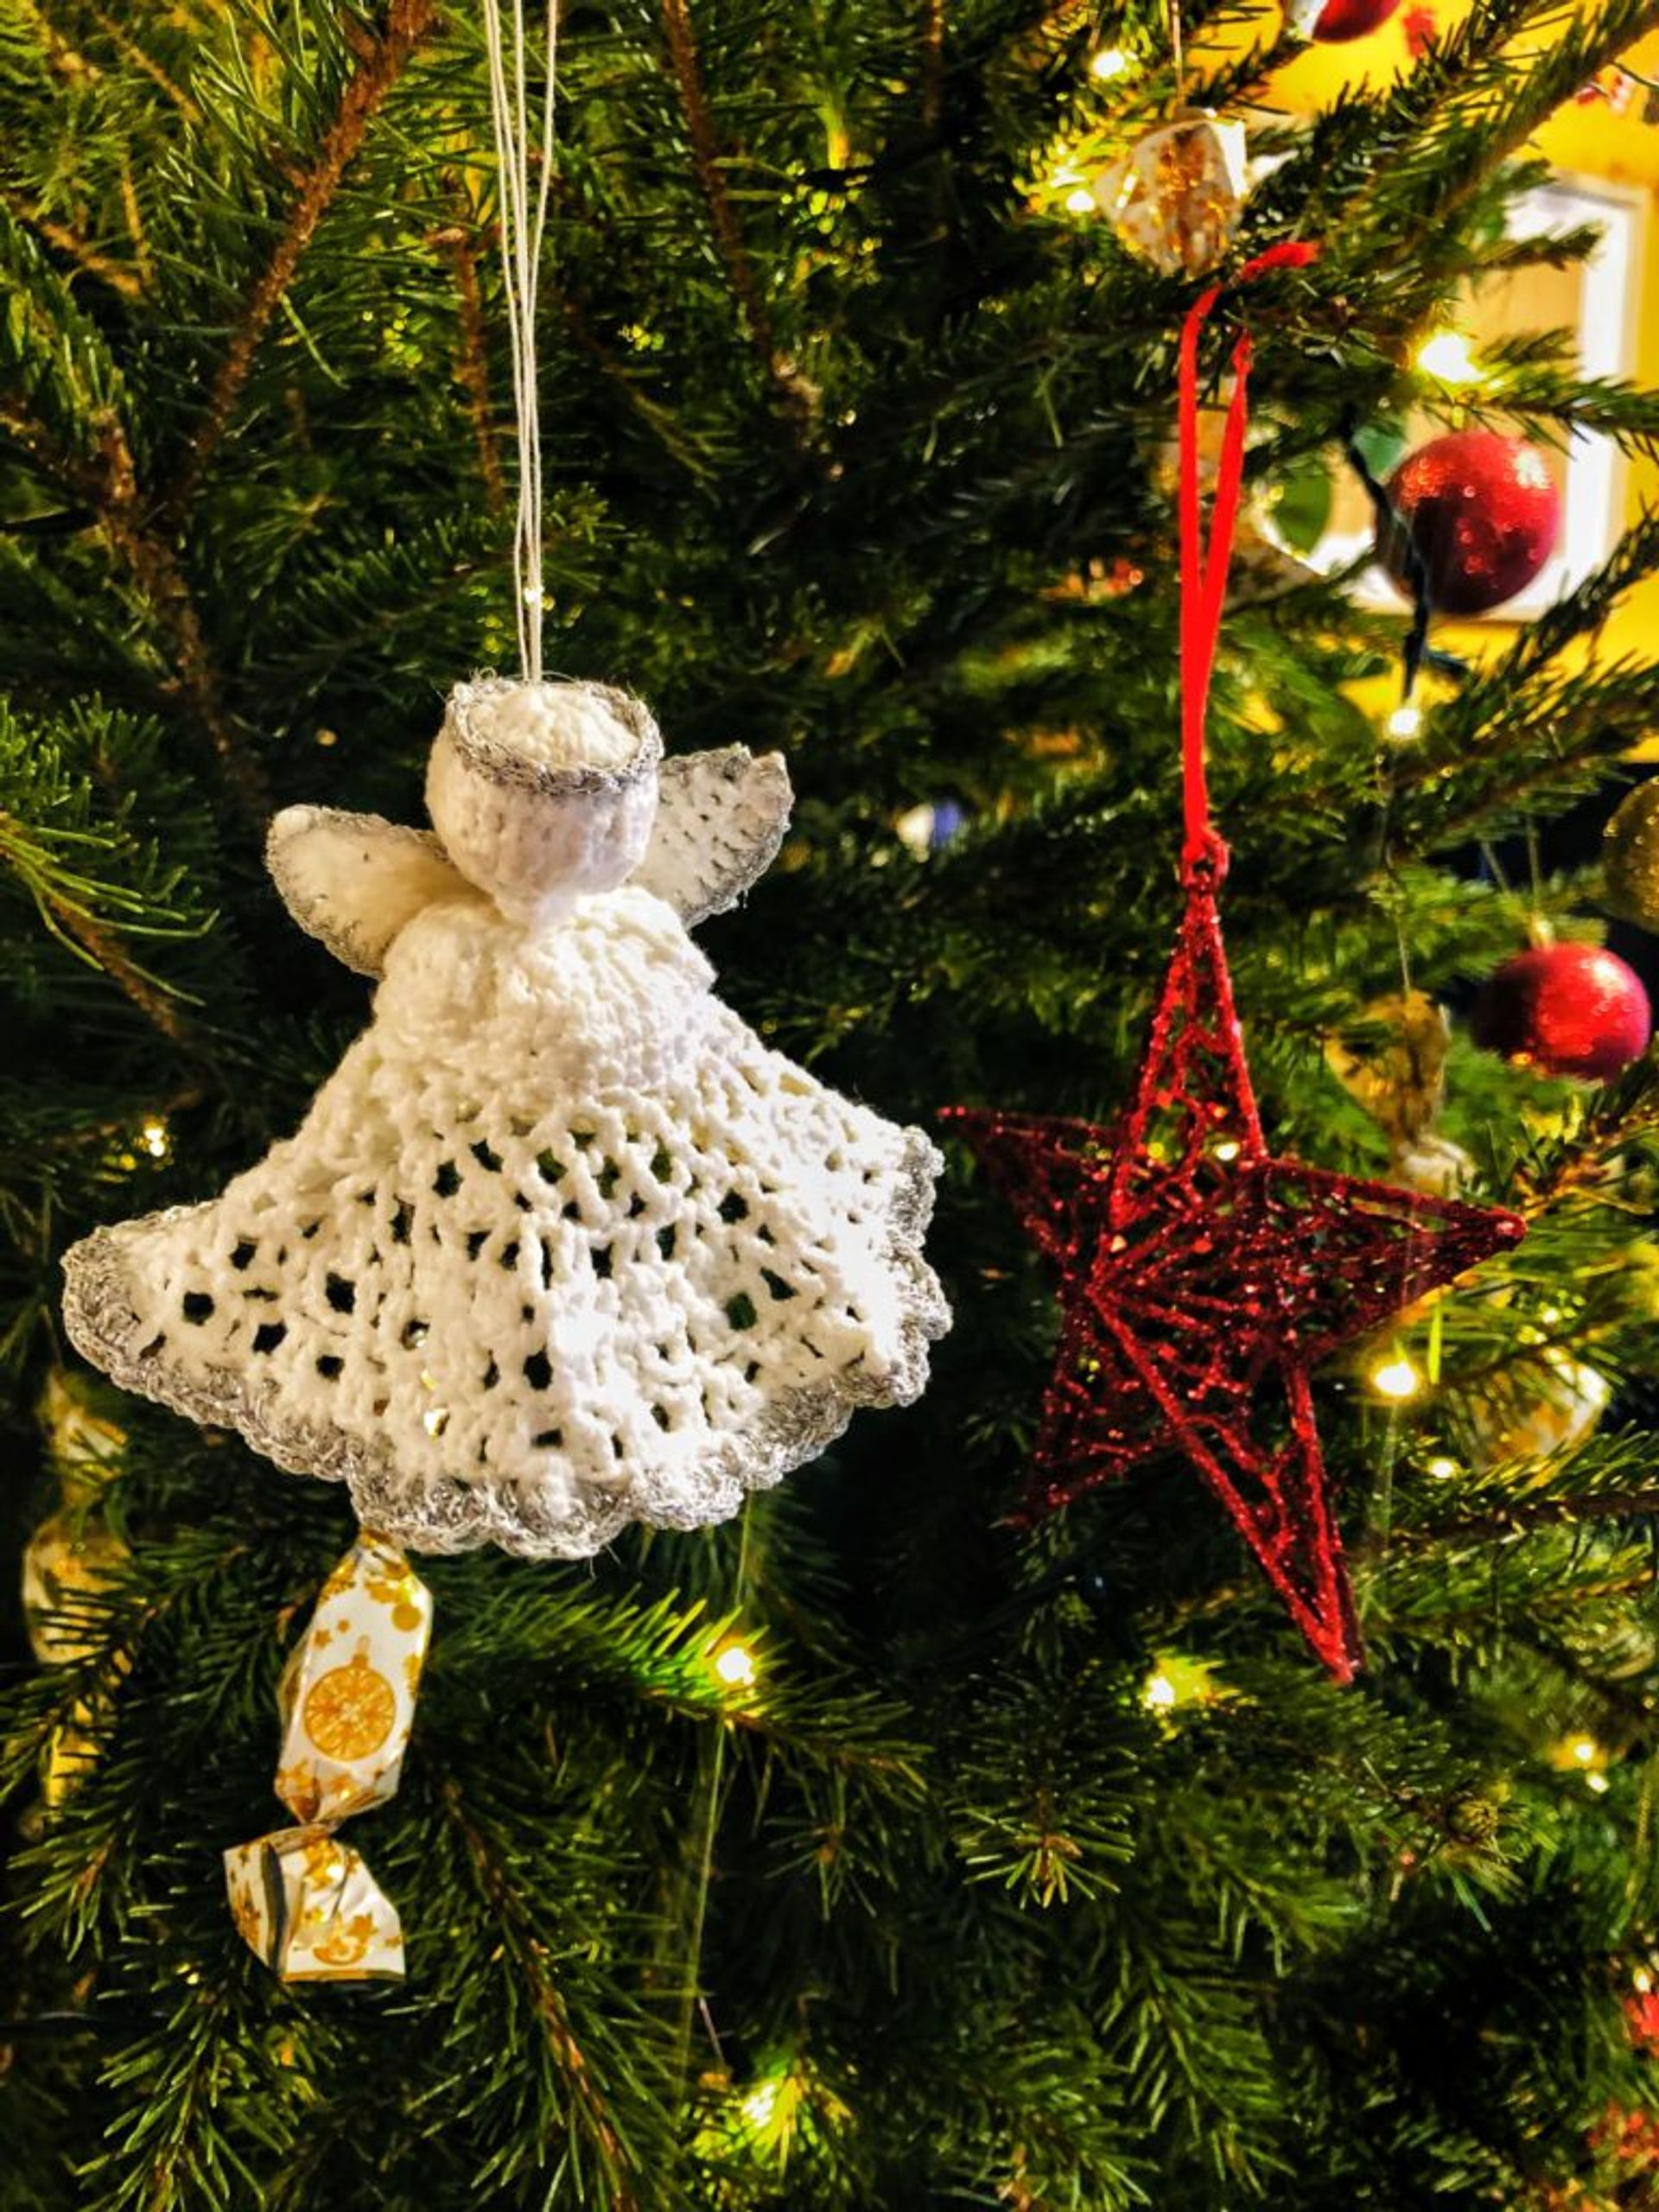 A crochet angel decoration hanging on a Christmas tree.